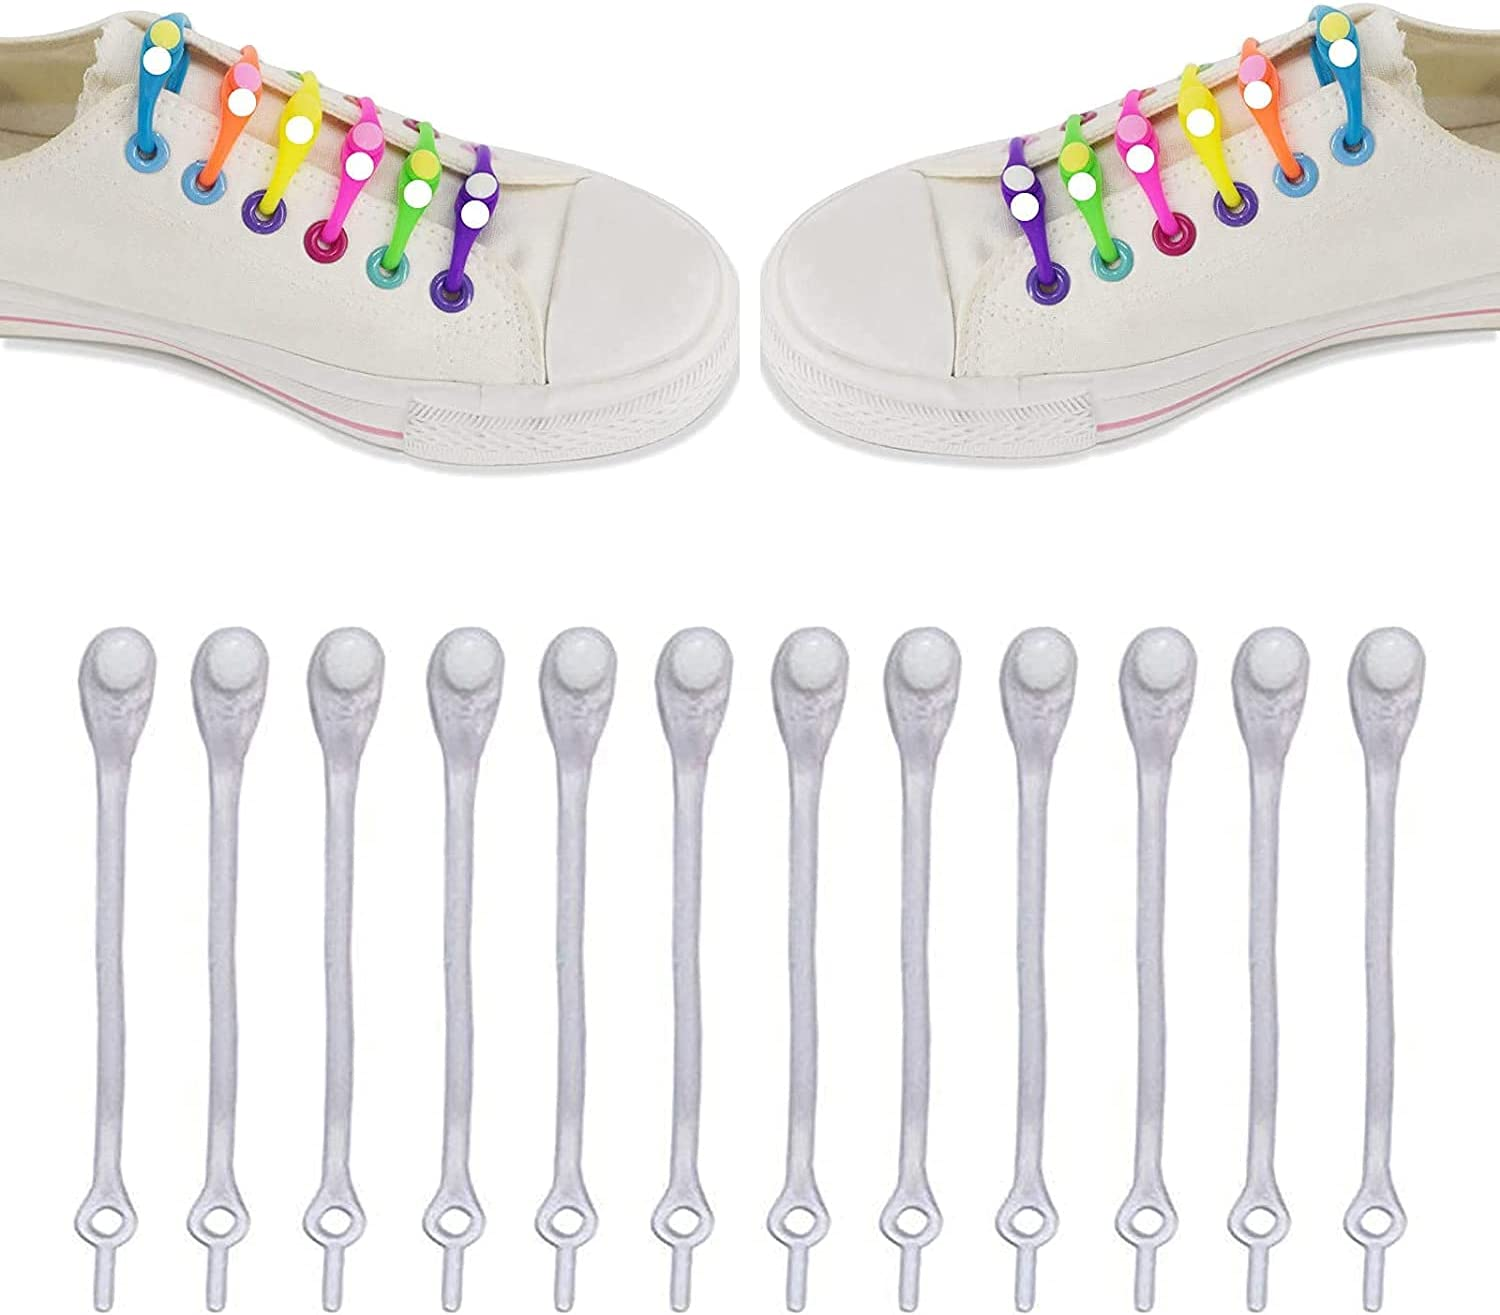 AESO Special price Max 43% OFF for a limited time 12pcs Lazy Elastic Shoelaces Round Shoe Tie-Free Silicone